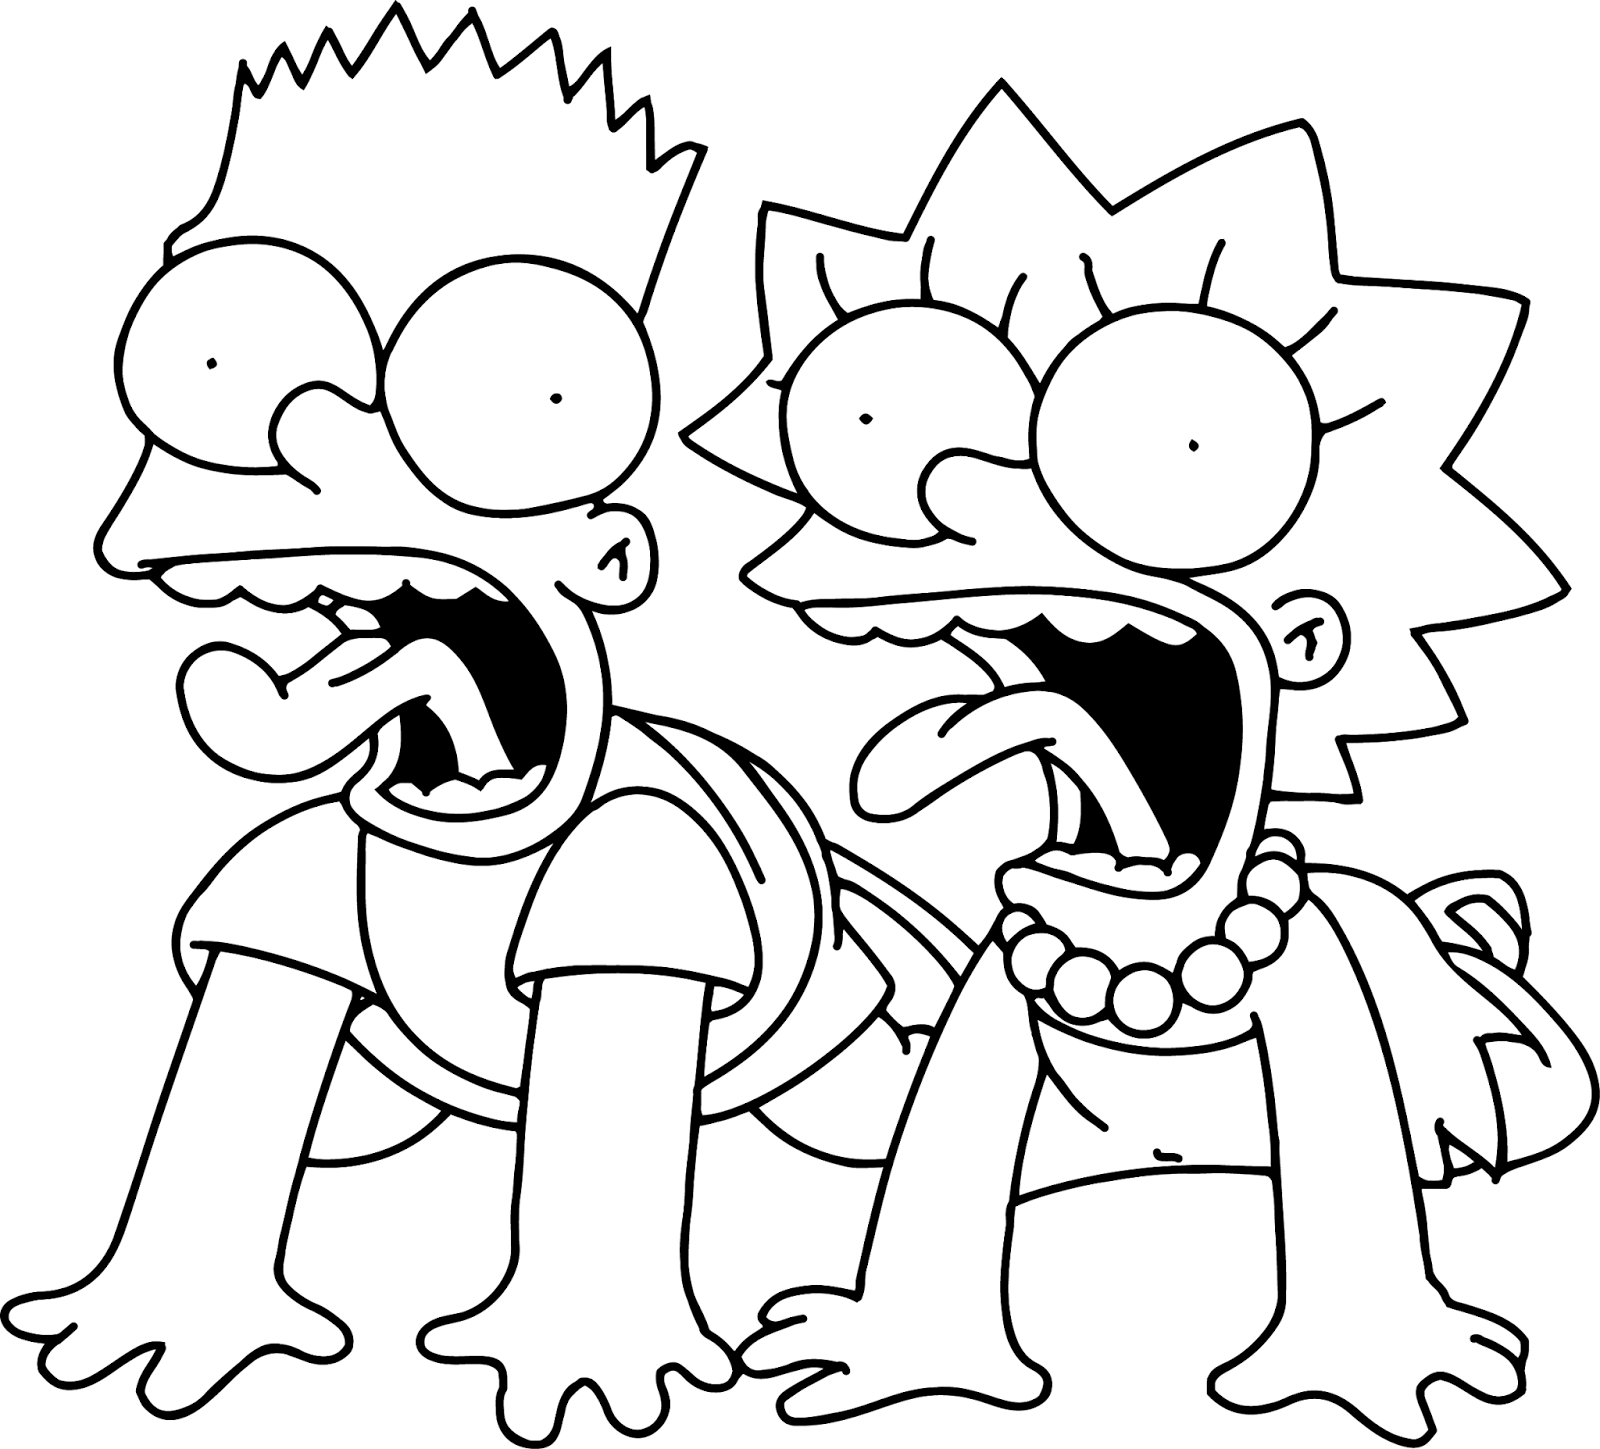 printable simpsons coloring pages free printable simpsons coloring pages for kids coloring pages printable simpsons